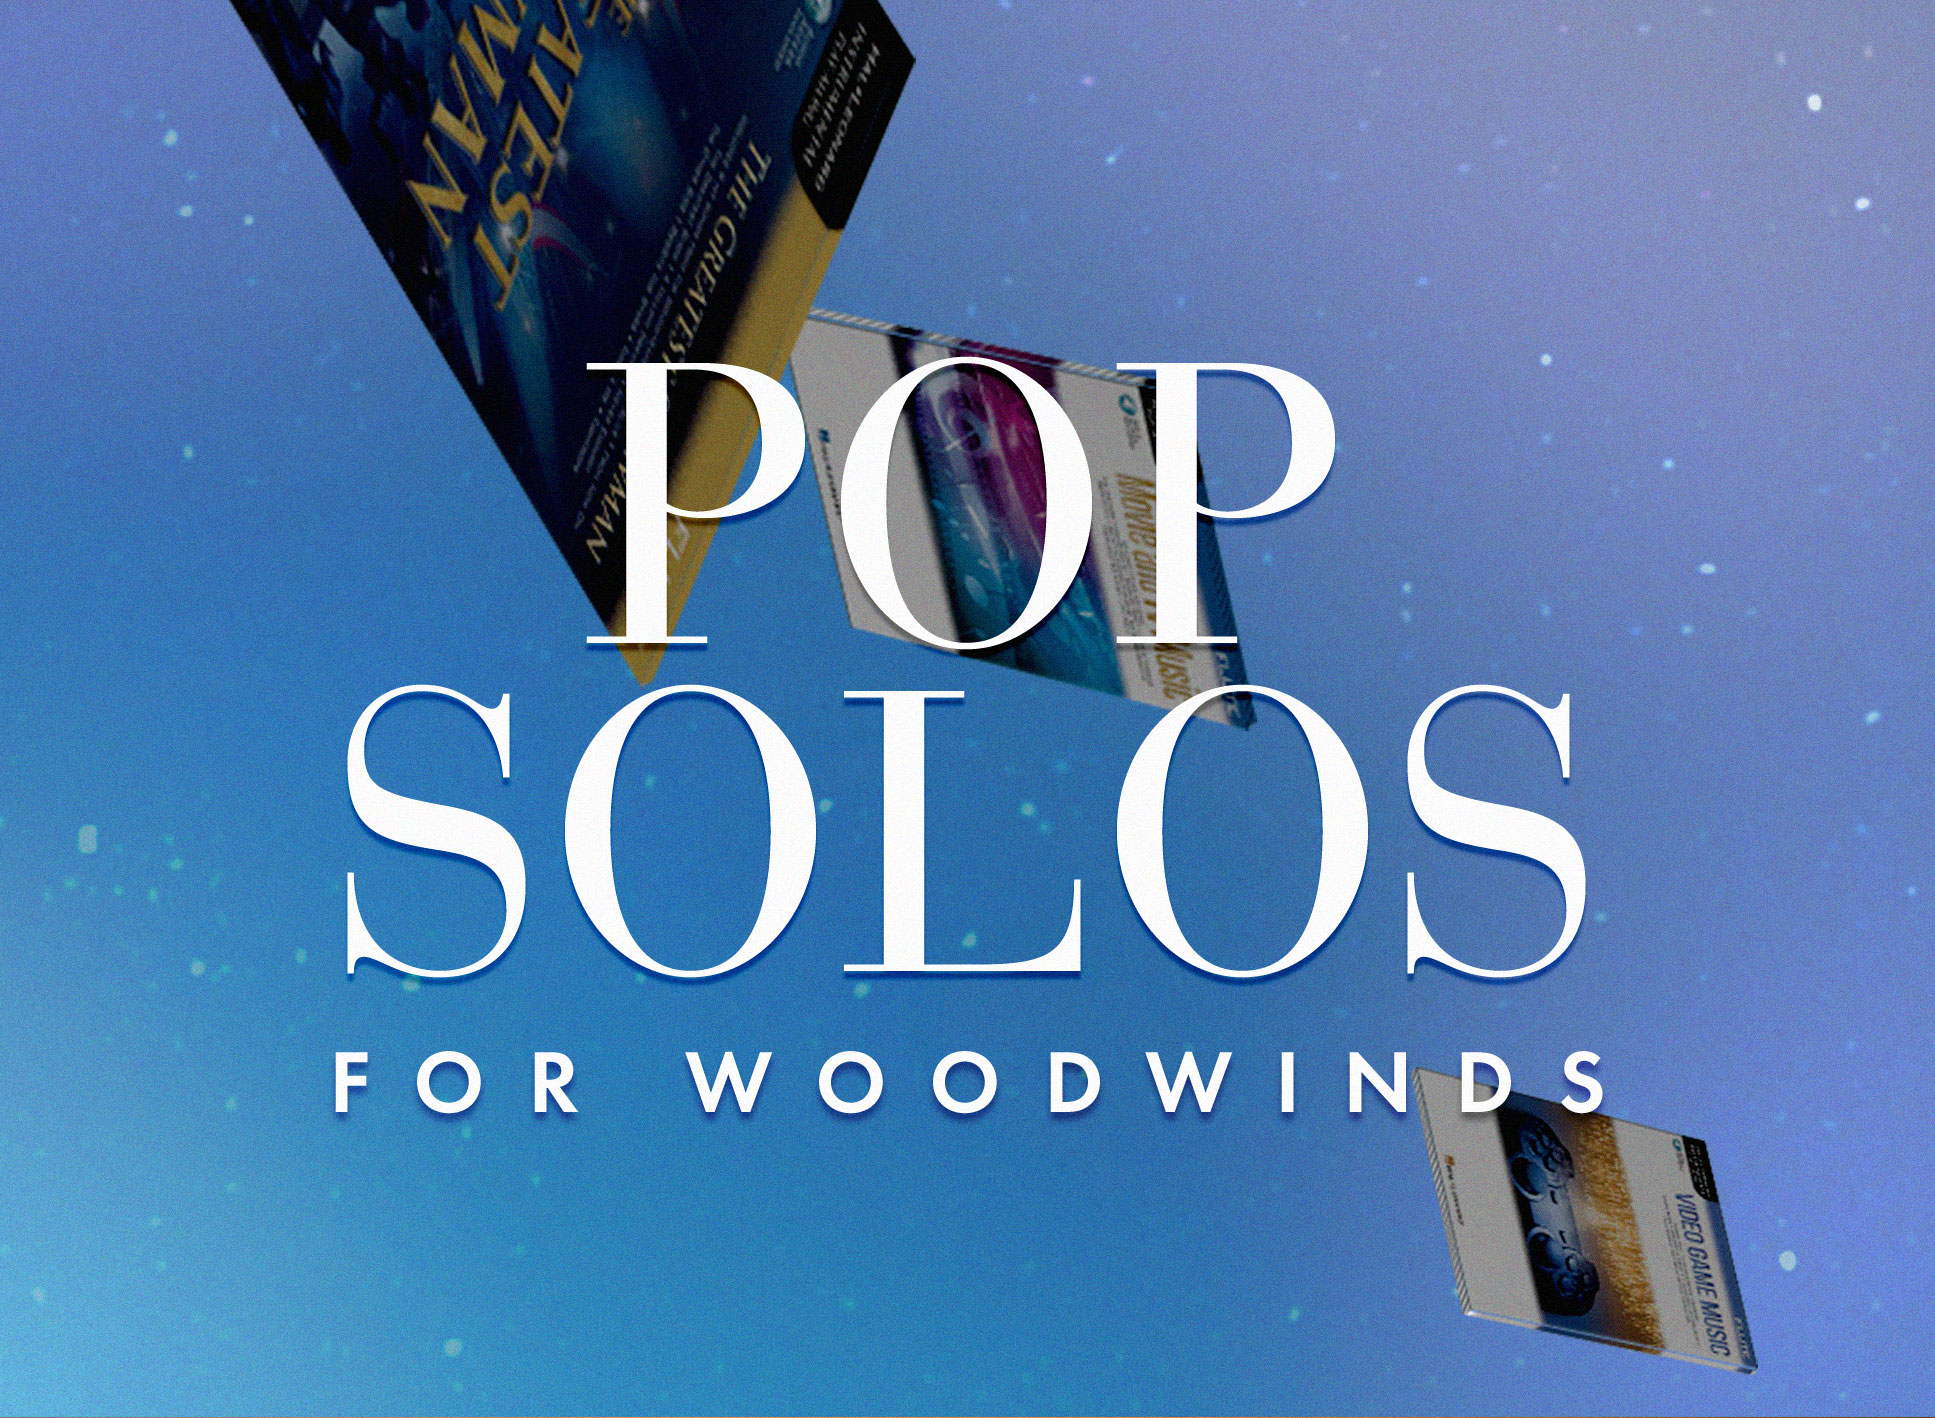 Shop pop solo music for woodwinds.